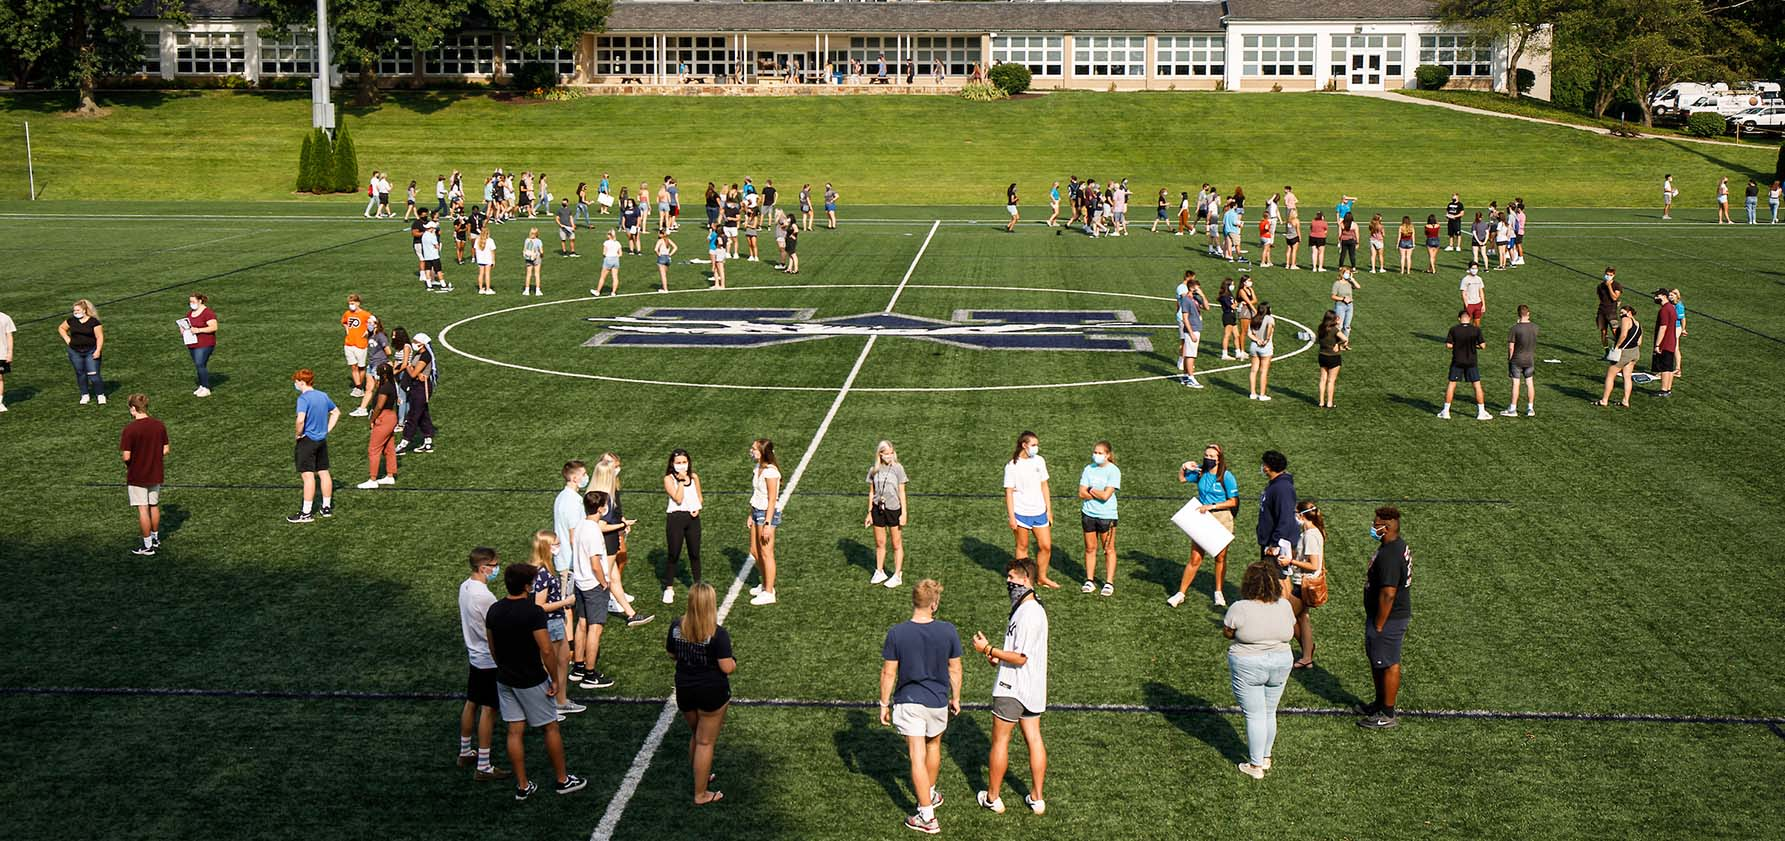 Students participate in orientation activities in small physically distanced groups on Makuvek Field.